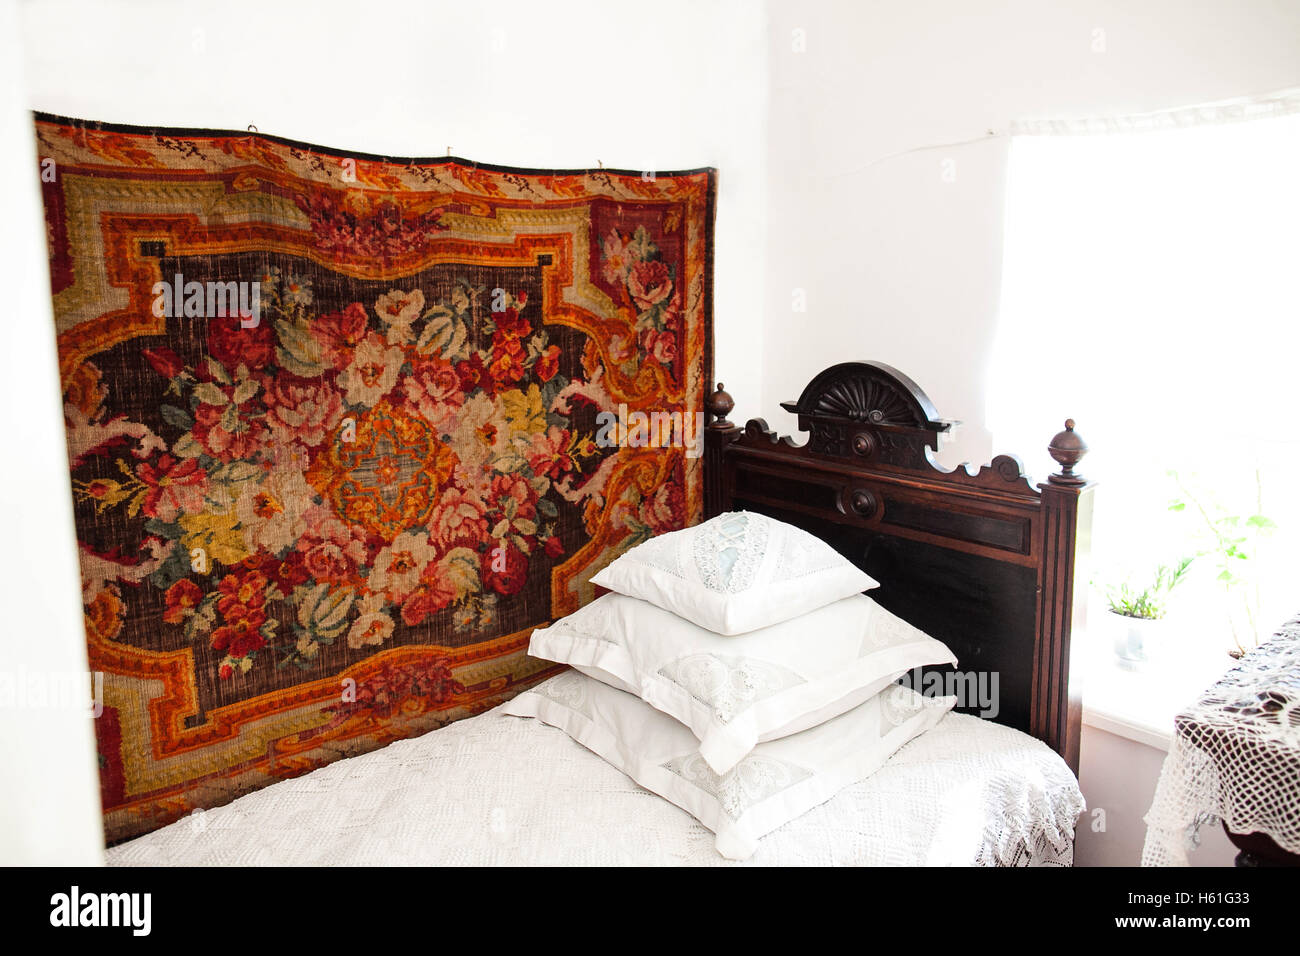 Interior With Russian Furniture Stock Photos & Interior With Russian ...